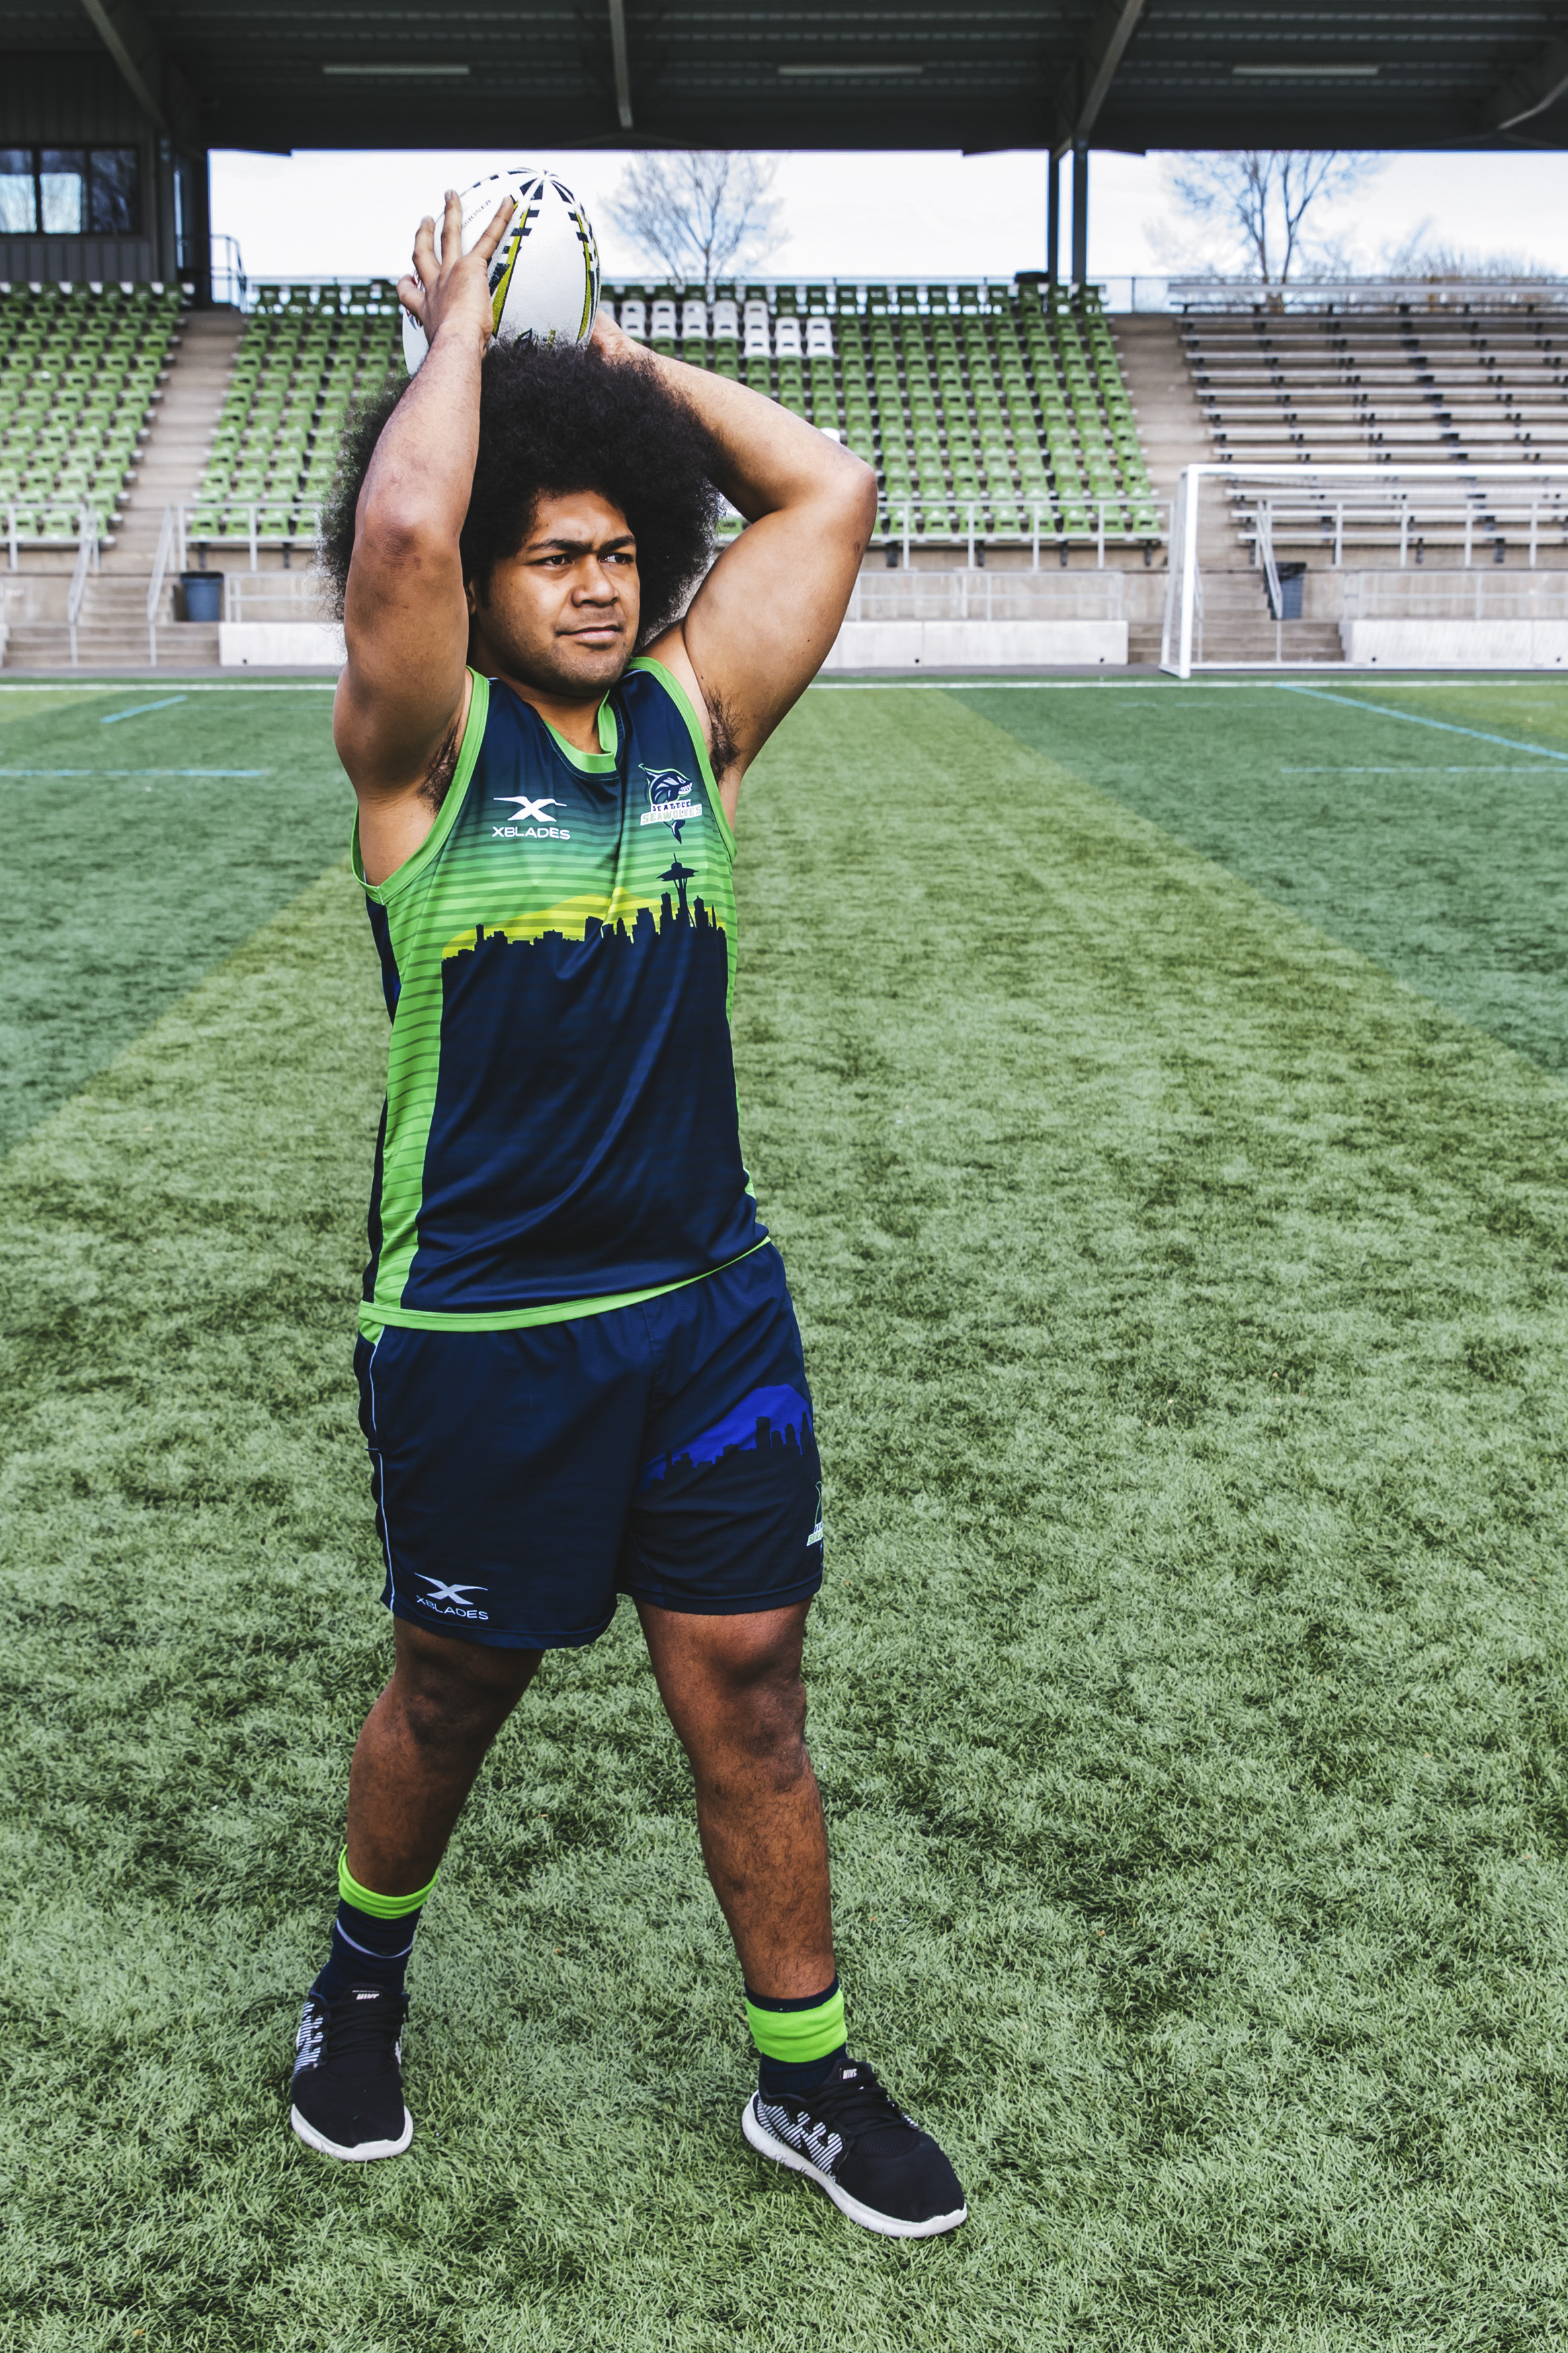 Meet Vili! I'm not sure you'll ever see Vili without a smile? He has the most beautiful smile first of all, but he's just like a giant teddy bear. The-25-year old plays Flanker for the Seawolves and is originally from Kahului, Maui, Hawaii. When I asked him what his favorite snack was he said horse, and I couldn't tell if he was messing with me or if he was serious... Either way - Vili is the man! (Image: Sunita Martini / Seattle Refined).